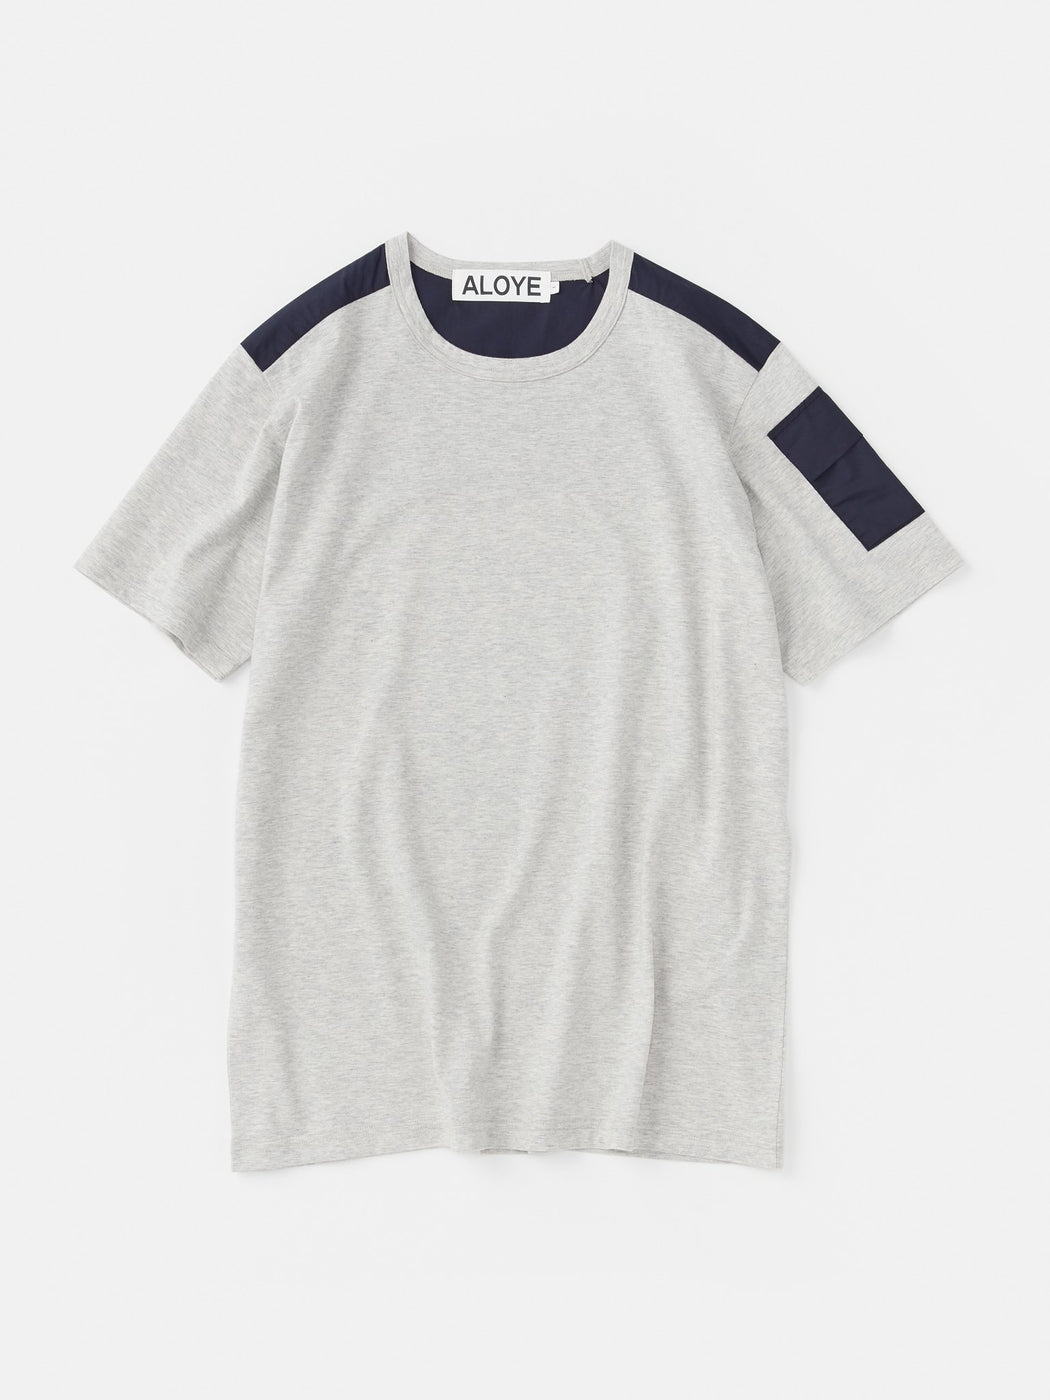 ALOYE Shirt Fabrics Short Sleeve T-shirt Heather Gray-Navy